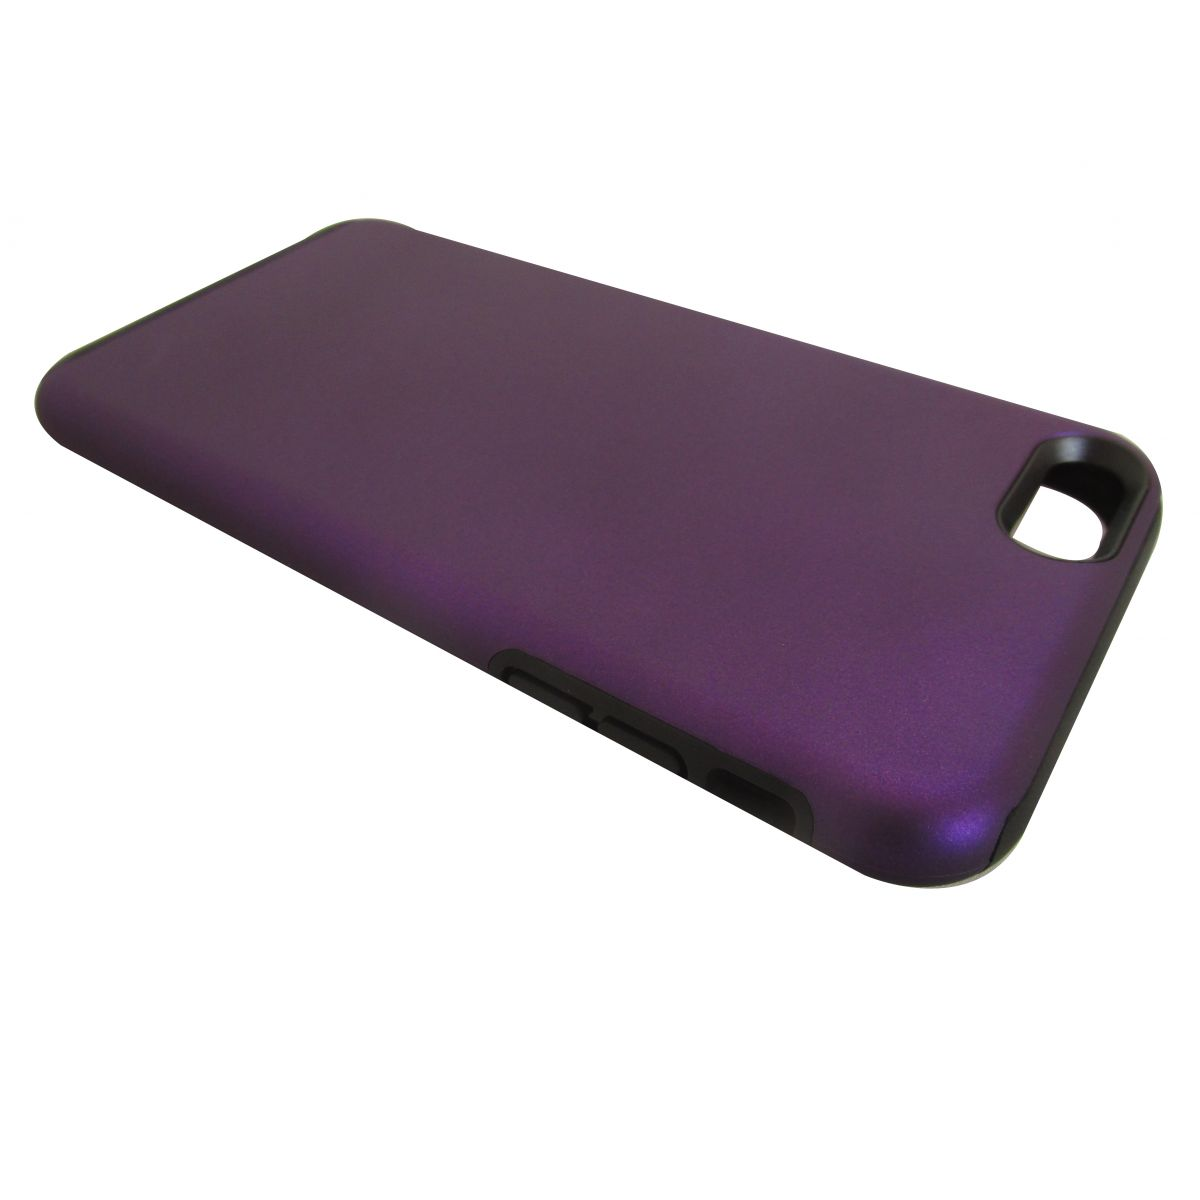 Capa Impacto Duo Para Iphone 6 Plus Intelimix Roxo